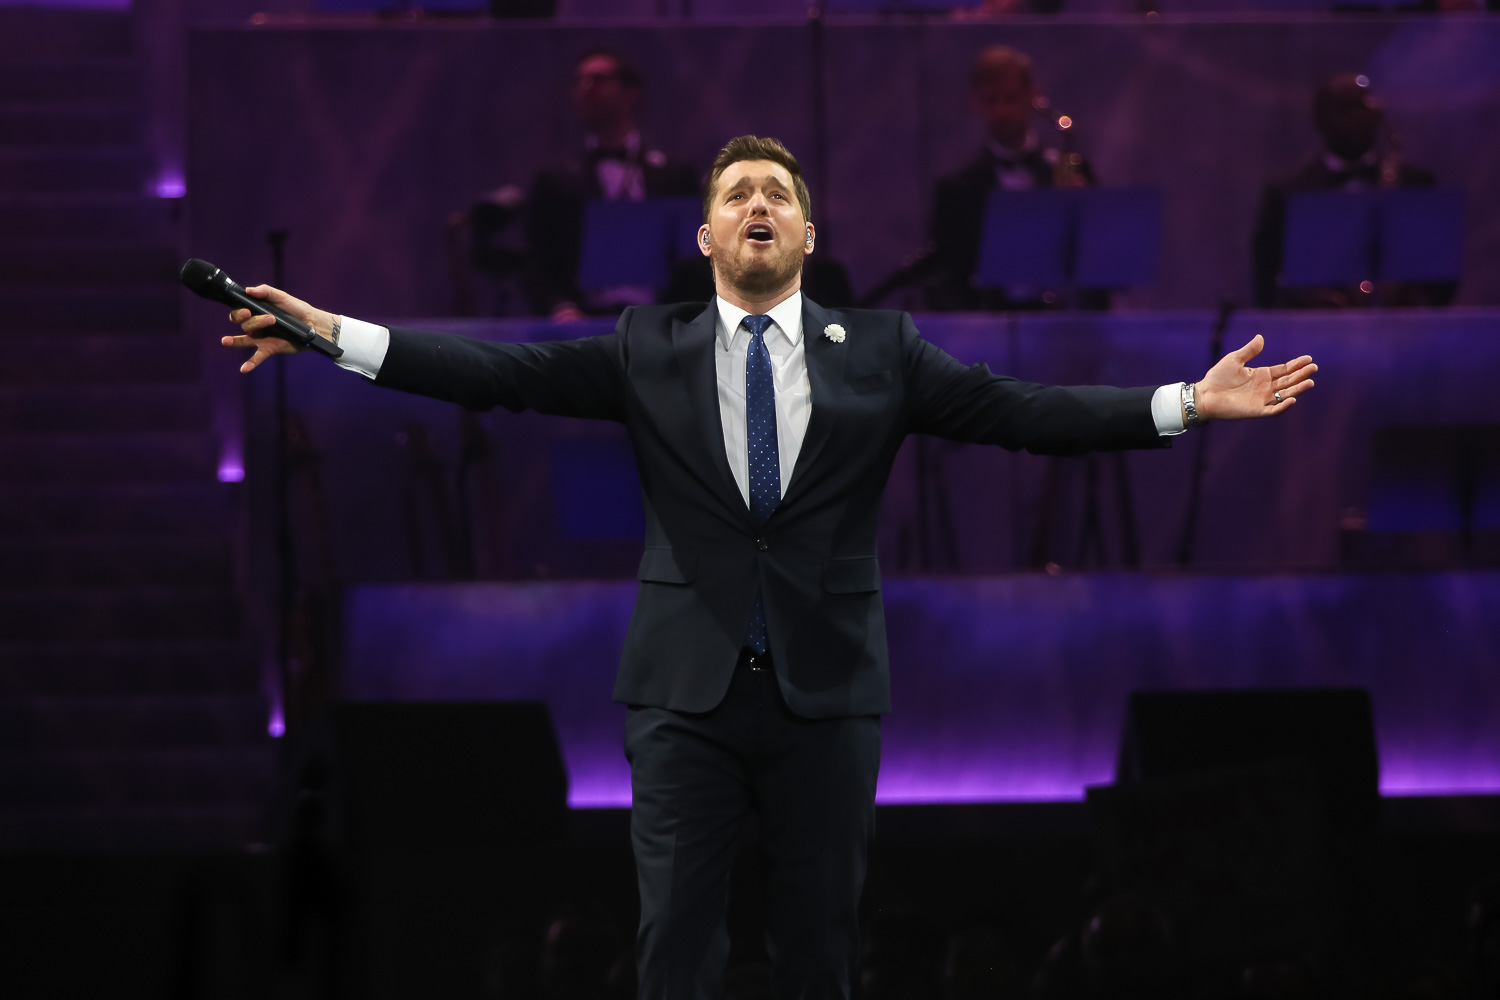 Michael Buble Christmas Special 2019.Michael Buble The Canadian Crooner Woos Crowd In Oakland